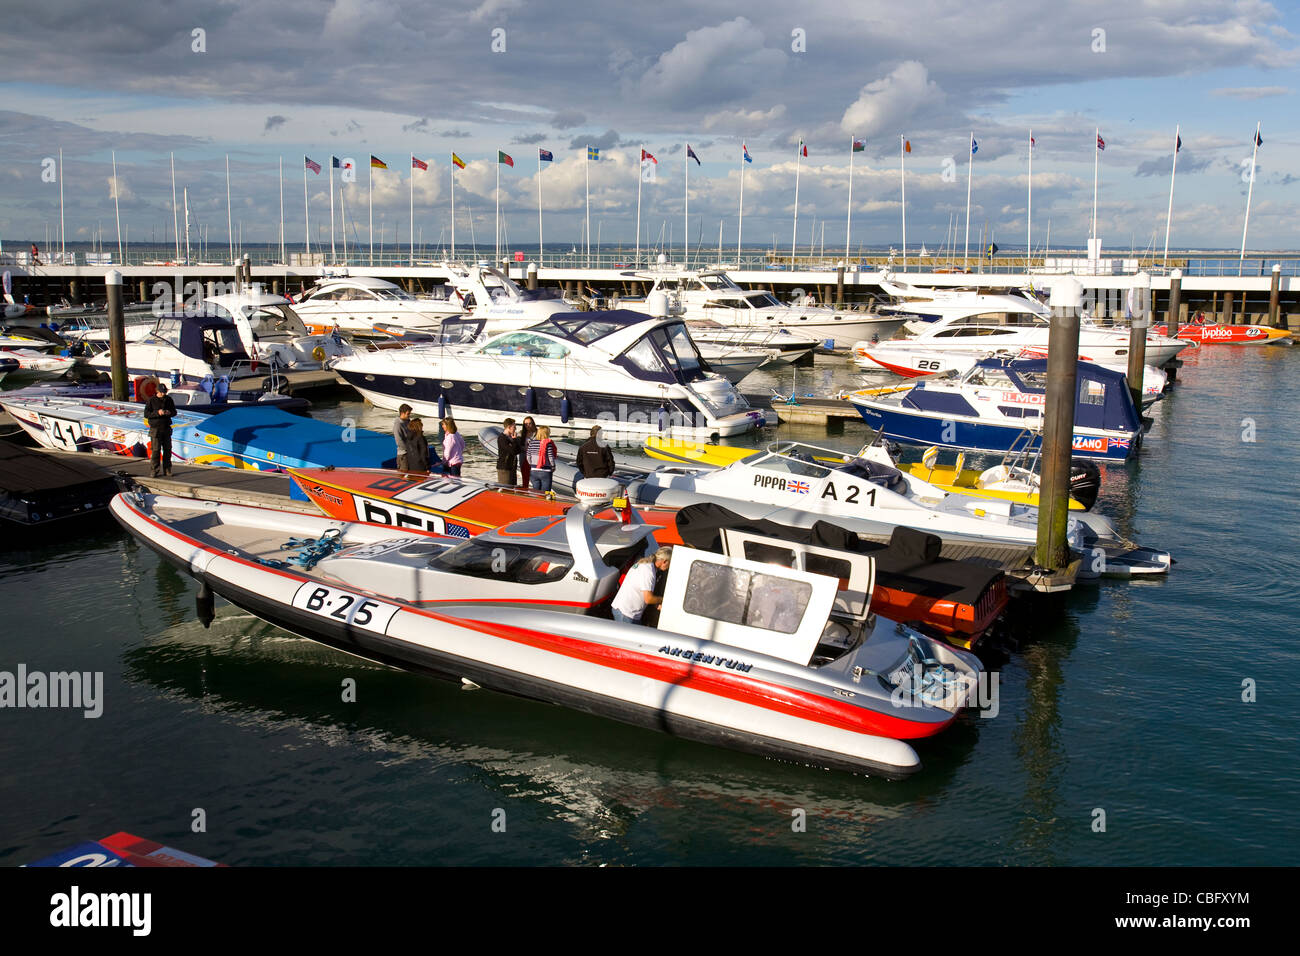 powerboat, Cowes Classic, Power Boat, Yacht Haven, Cowes, Isle of Wight, England, UK - Stock Image